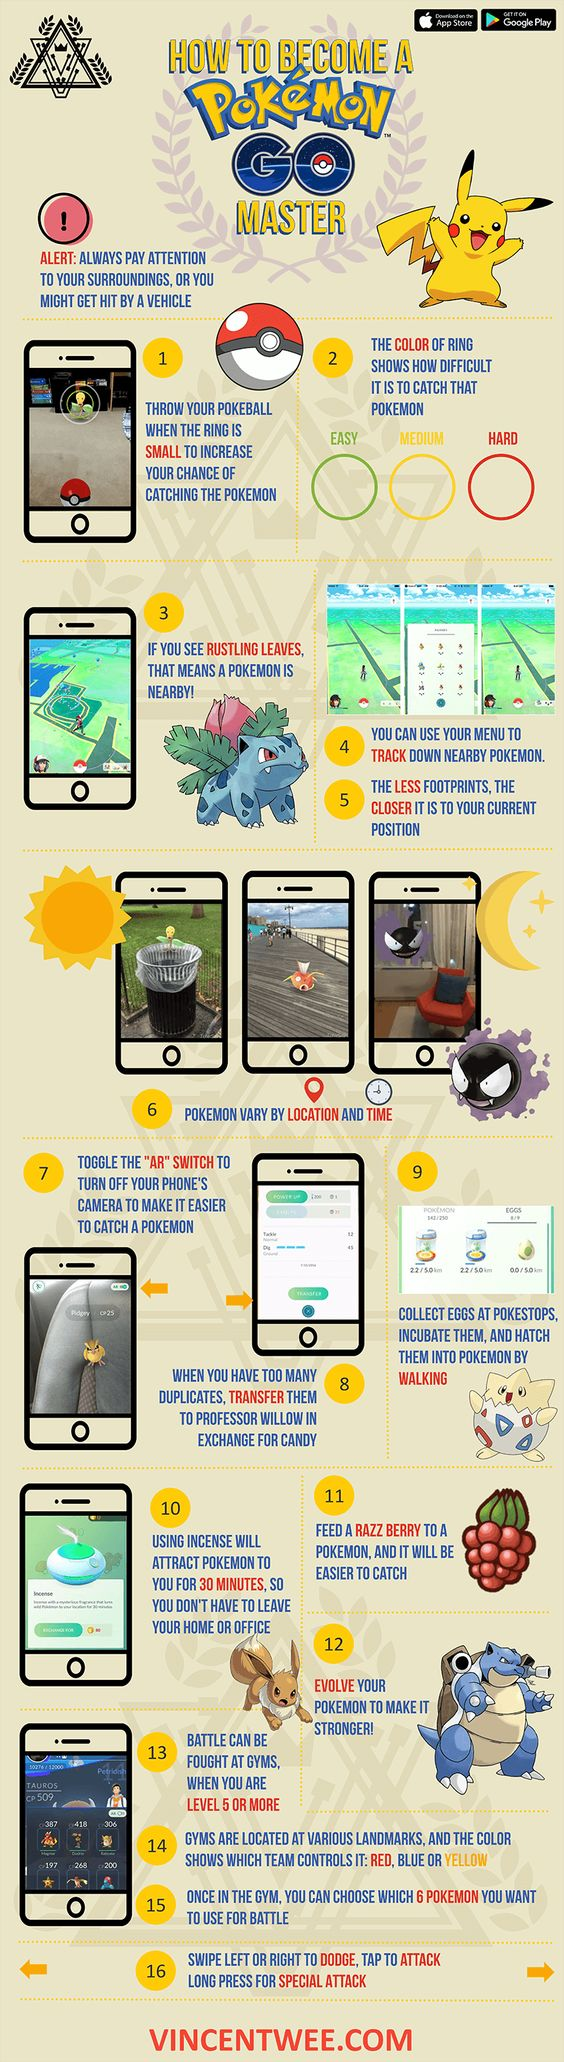 Everything you want to know about PokemonGo #Infographic